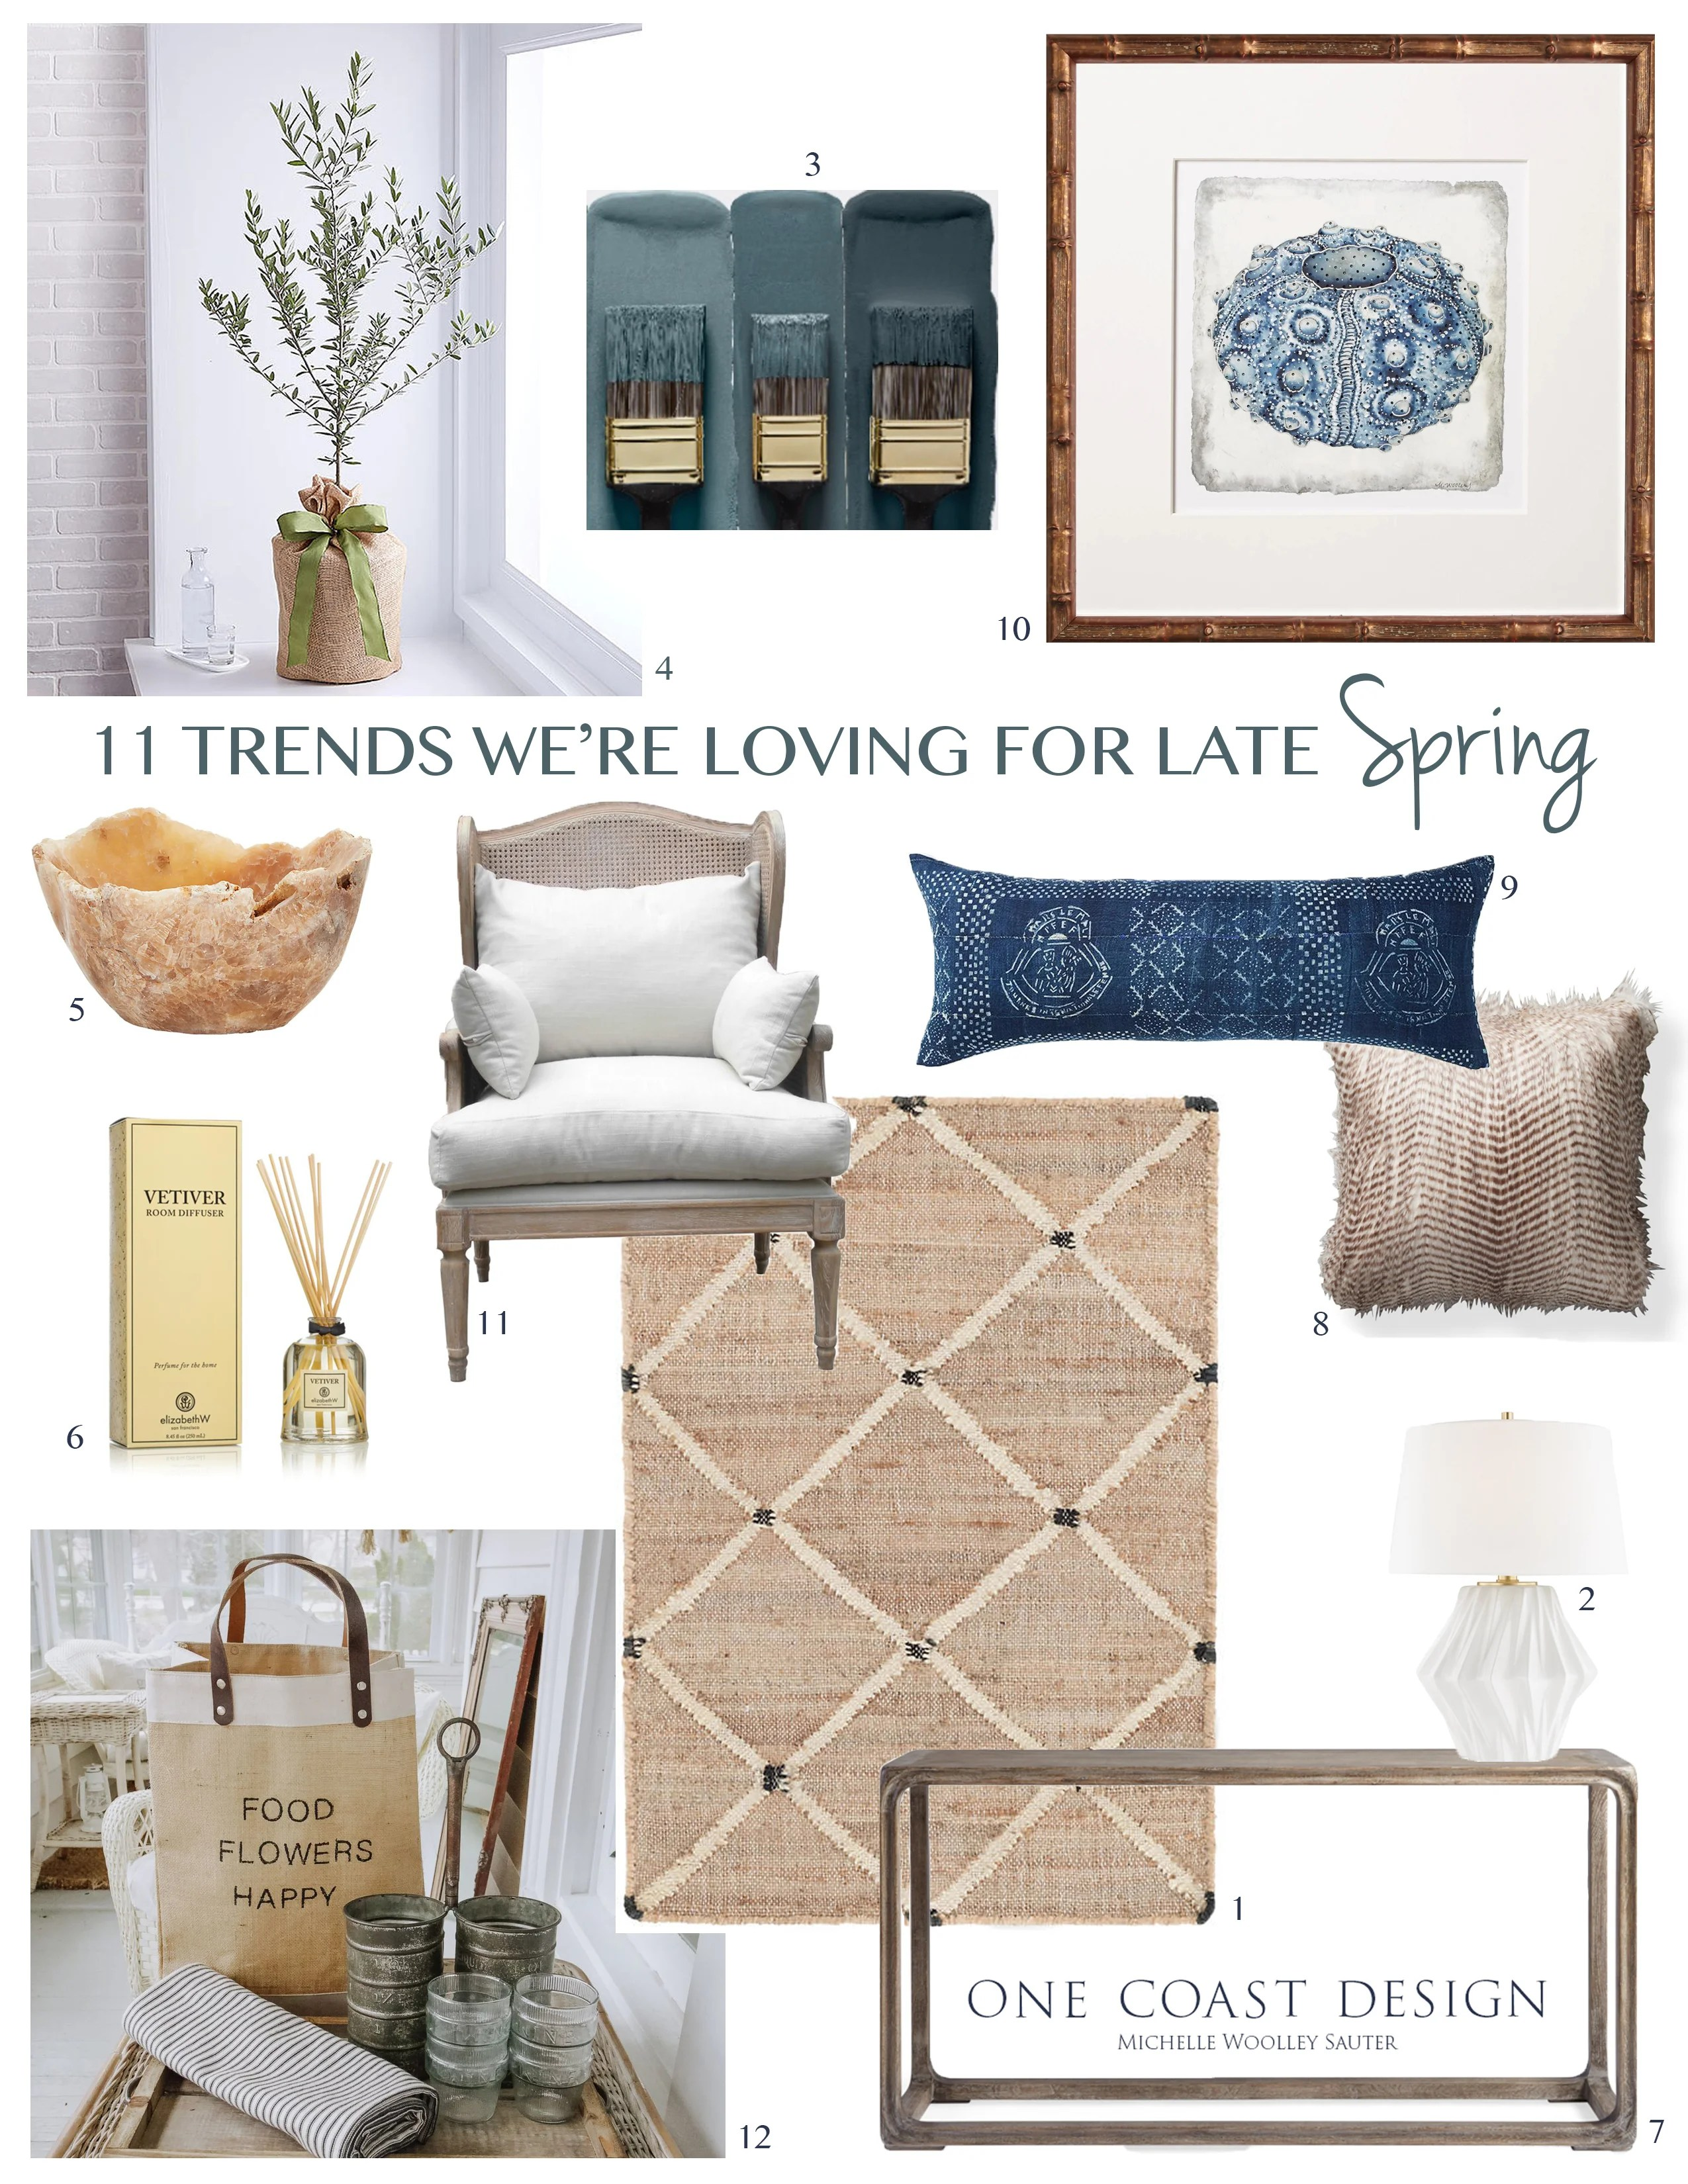 11 Trends Were Loving For Late Spring, One Coast Design